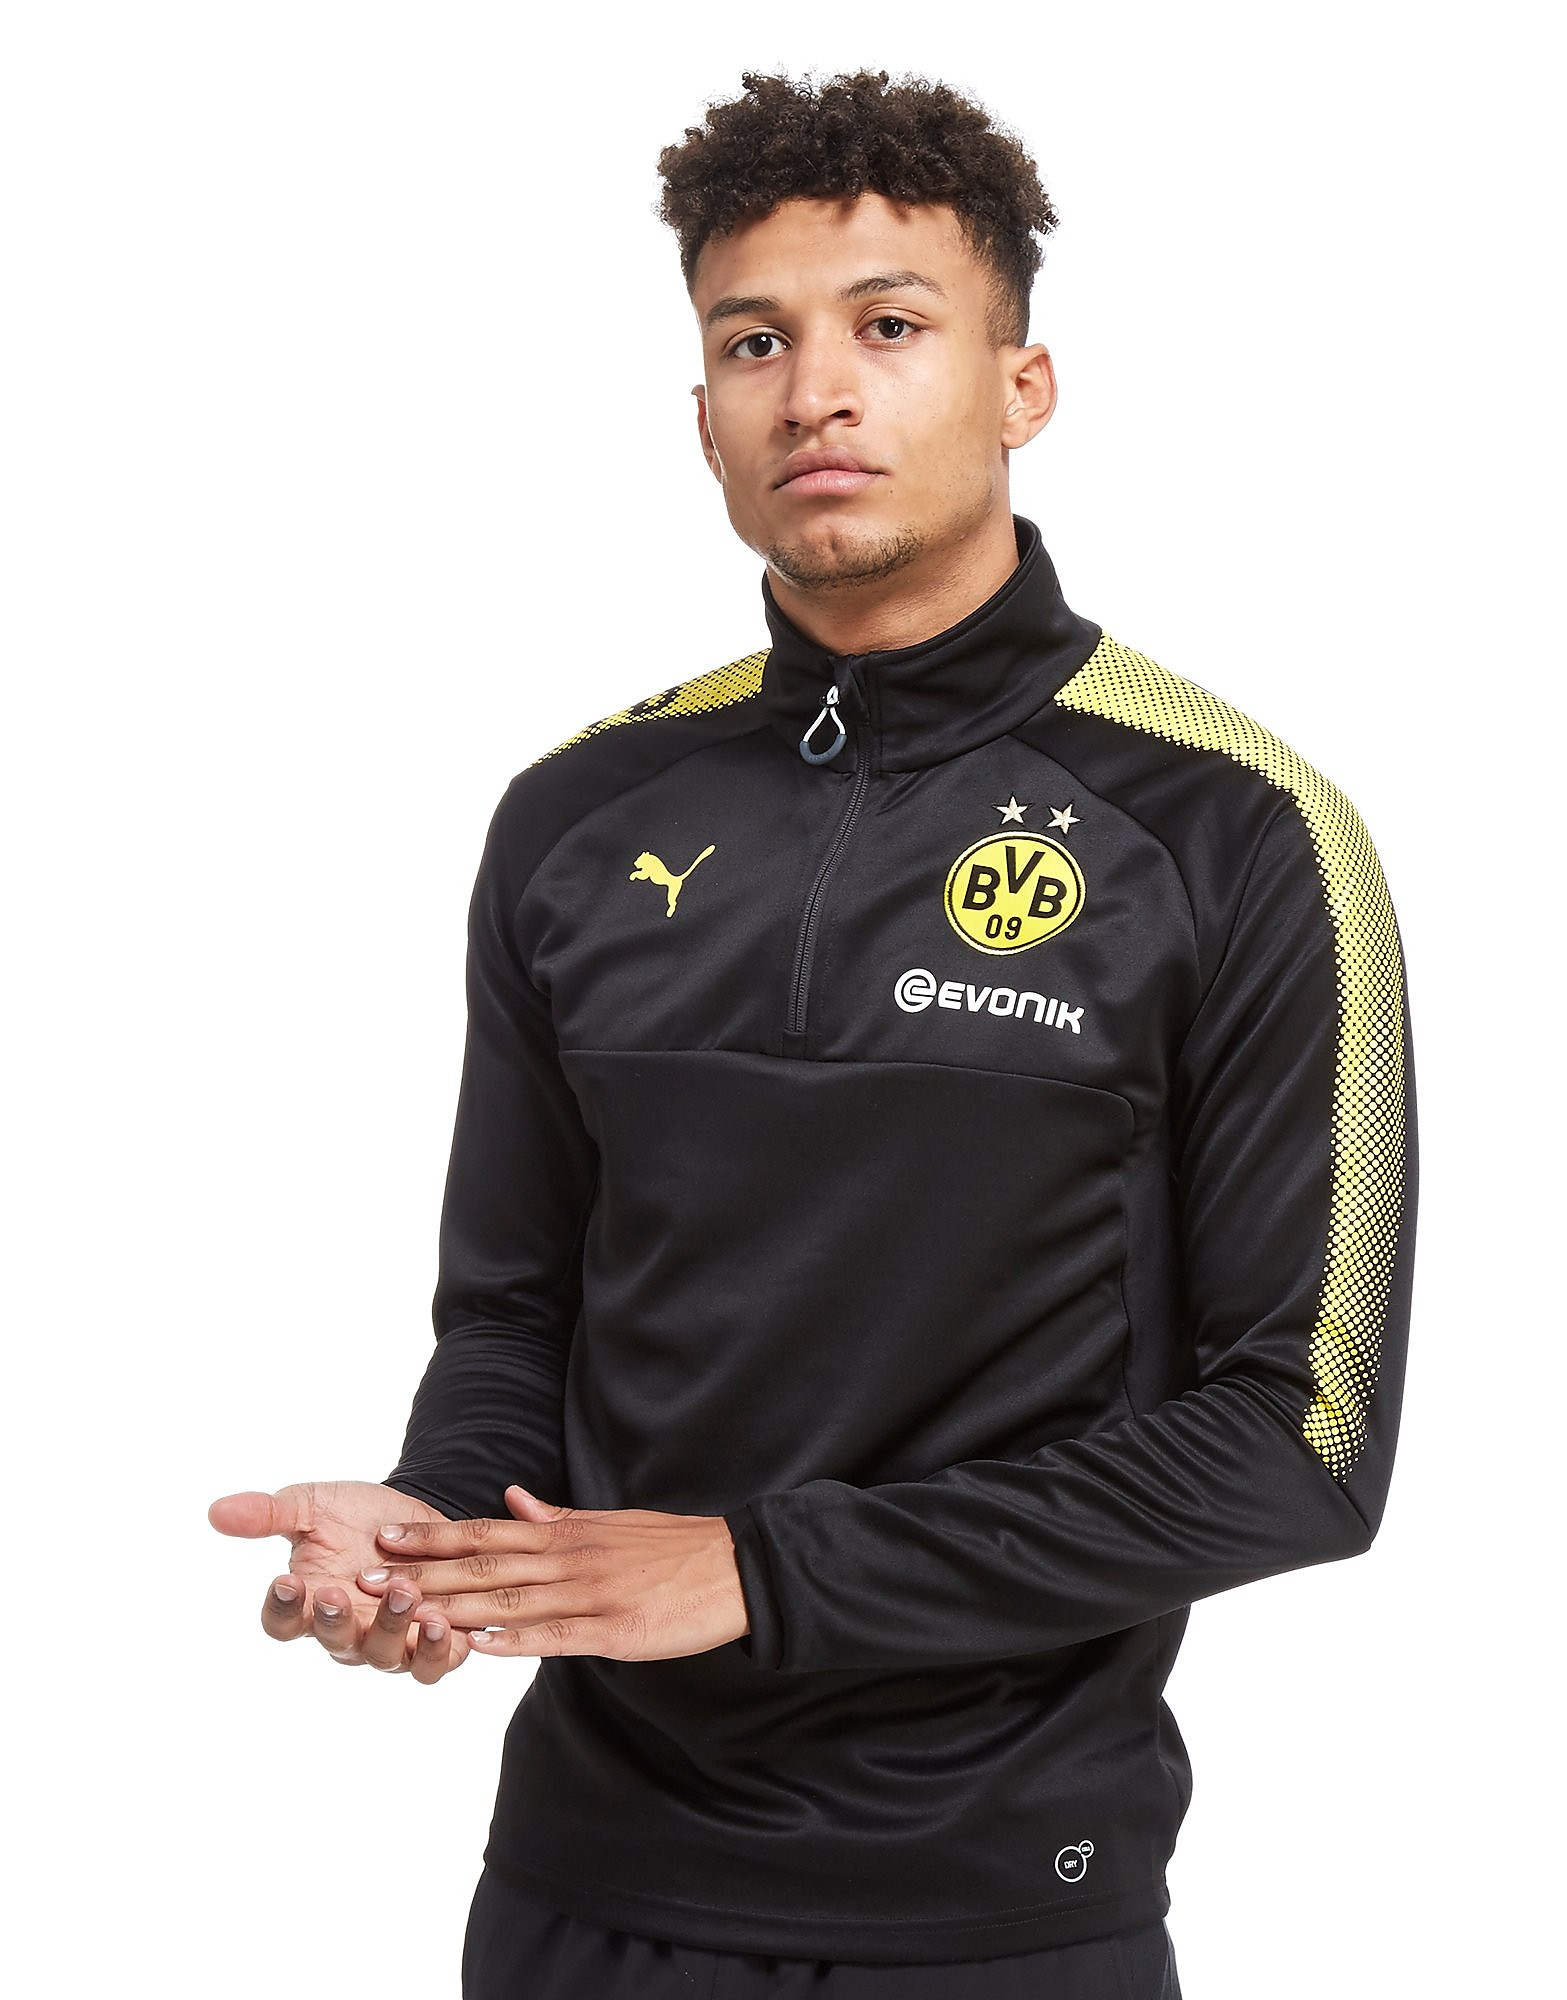 PUMA Borussia Dortmund 2017 Quarter Zip Training Top